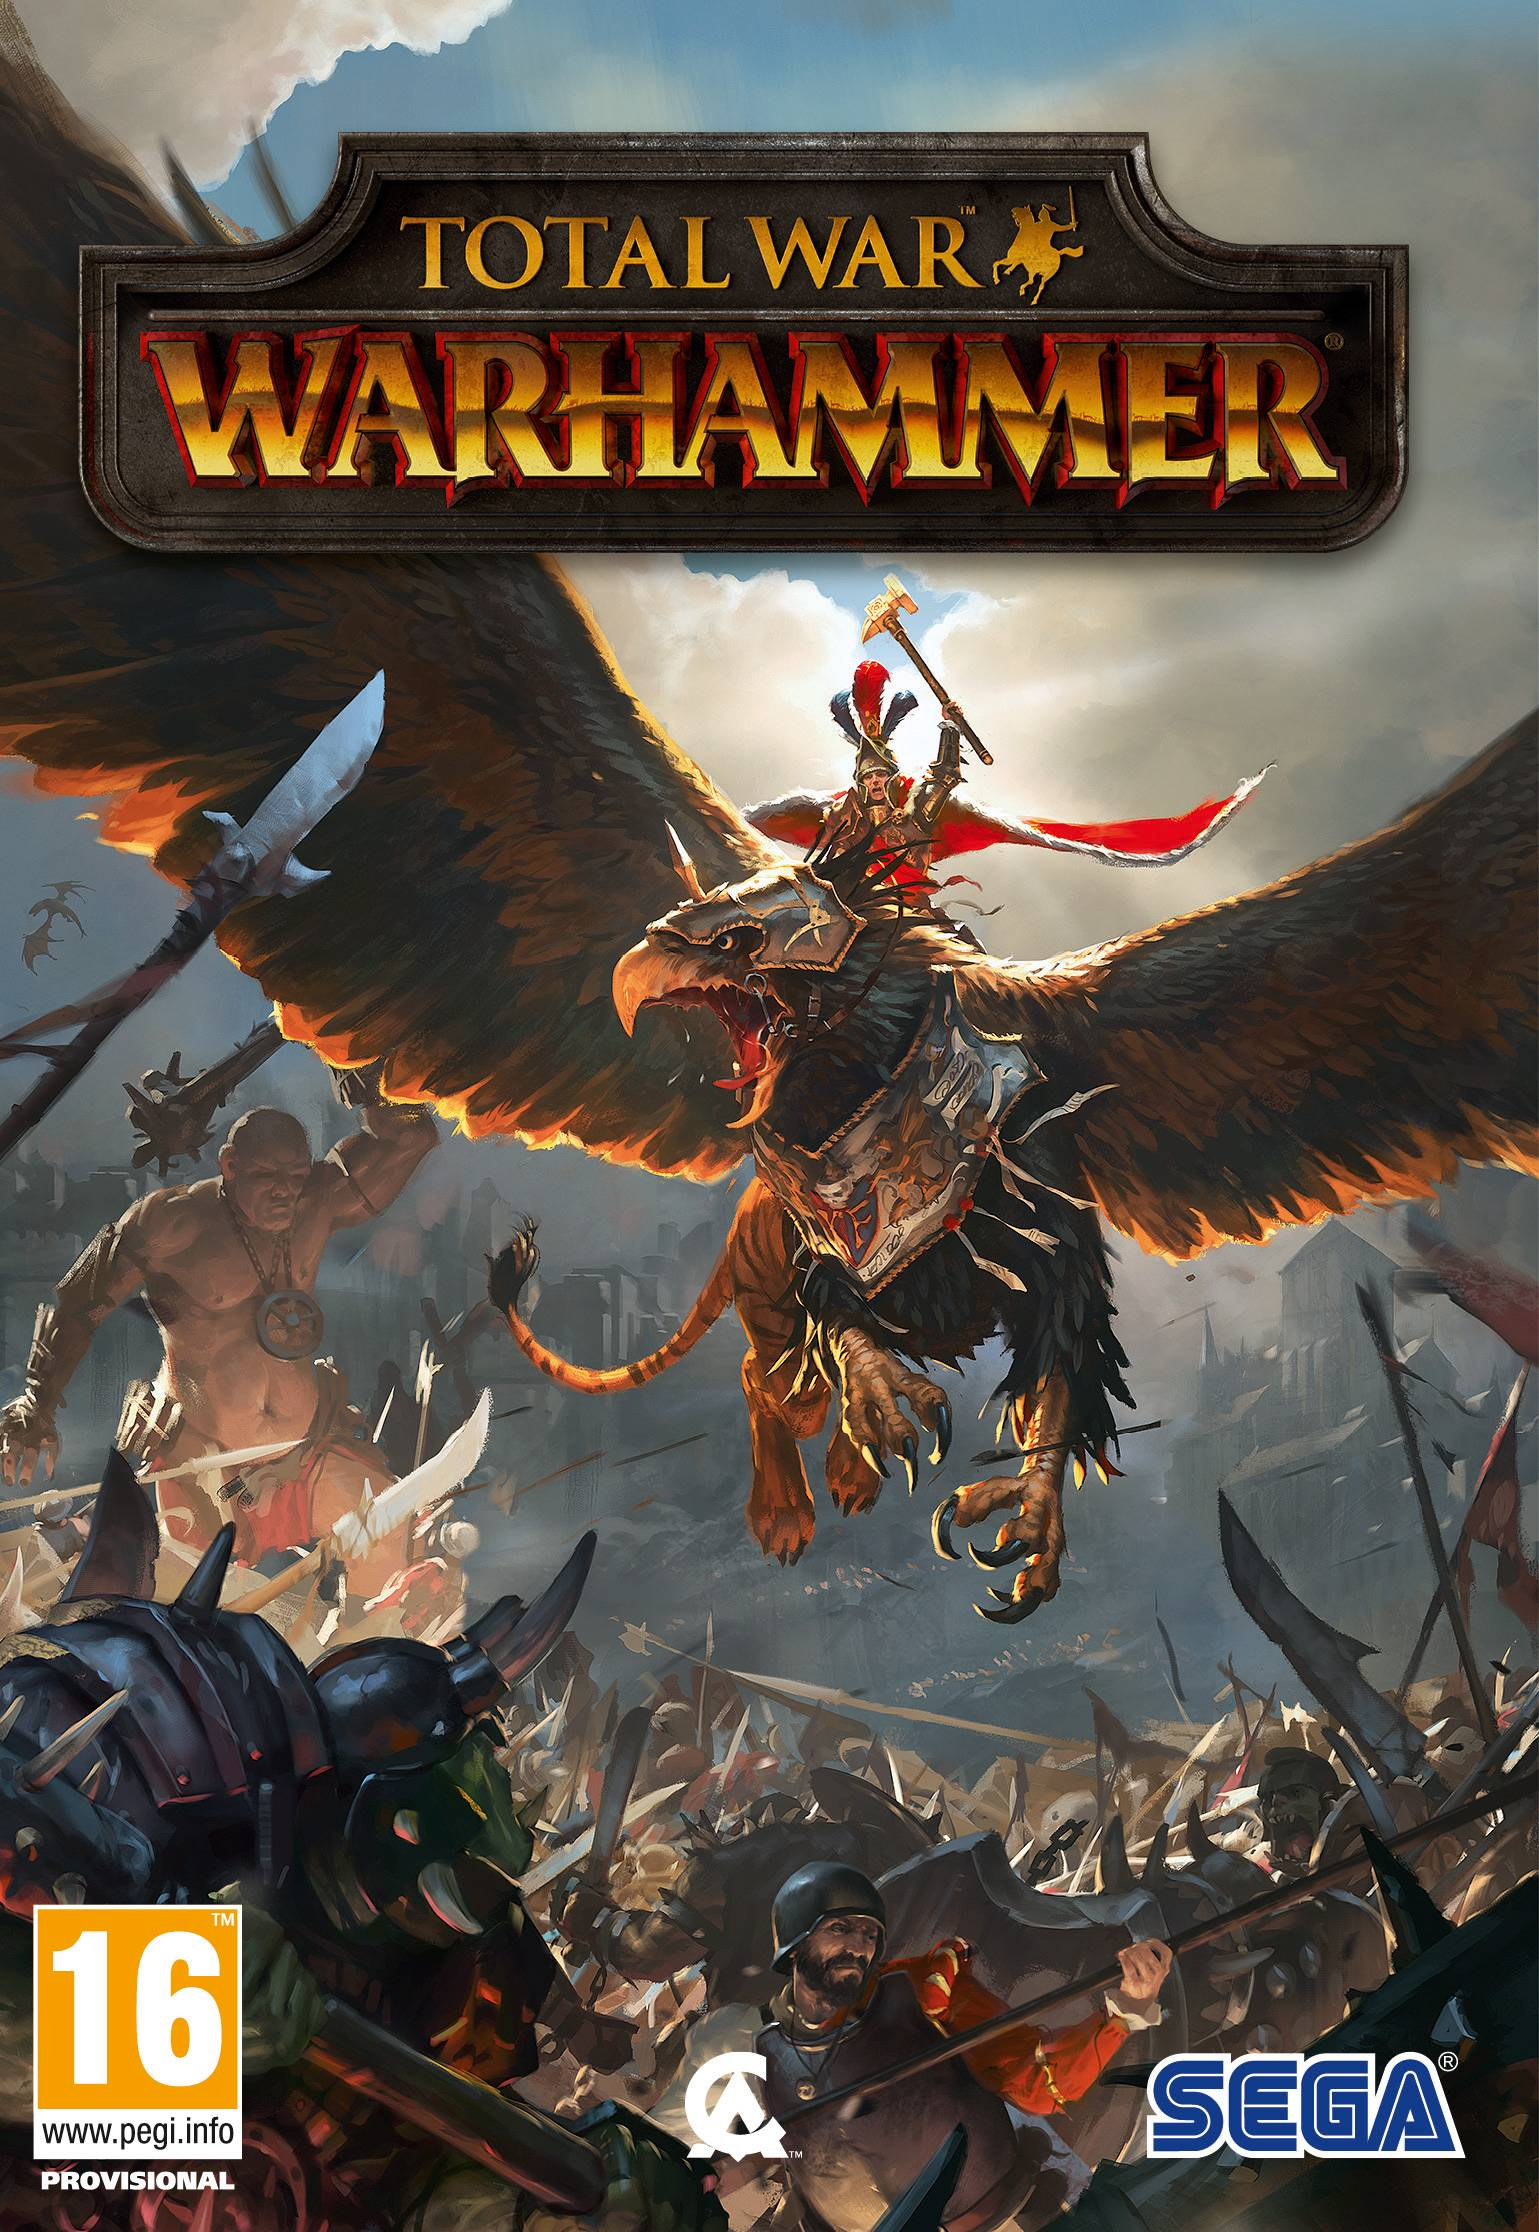 Total War: WARHAMMER +ALL DLC (RegionFREE) OFFLINE ACC.